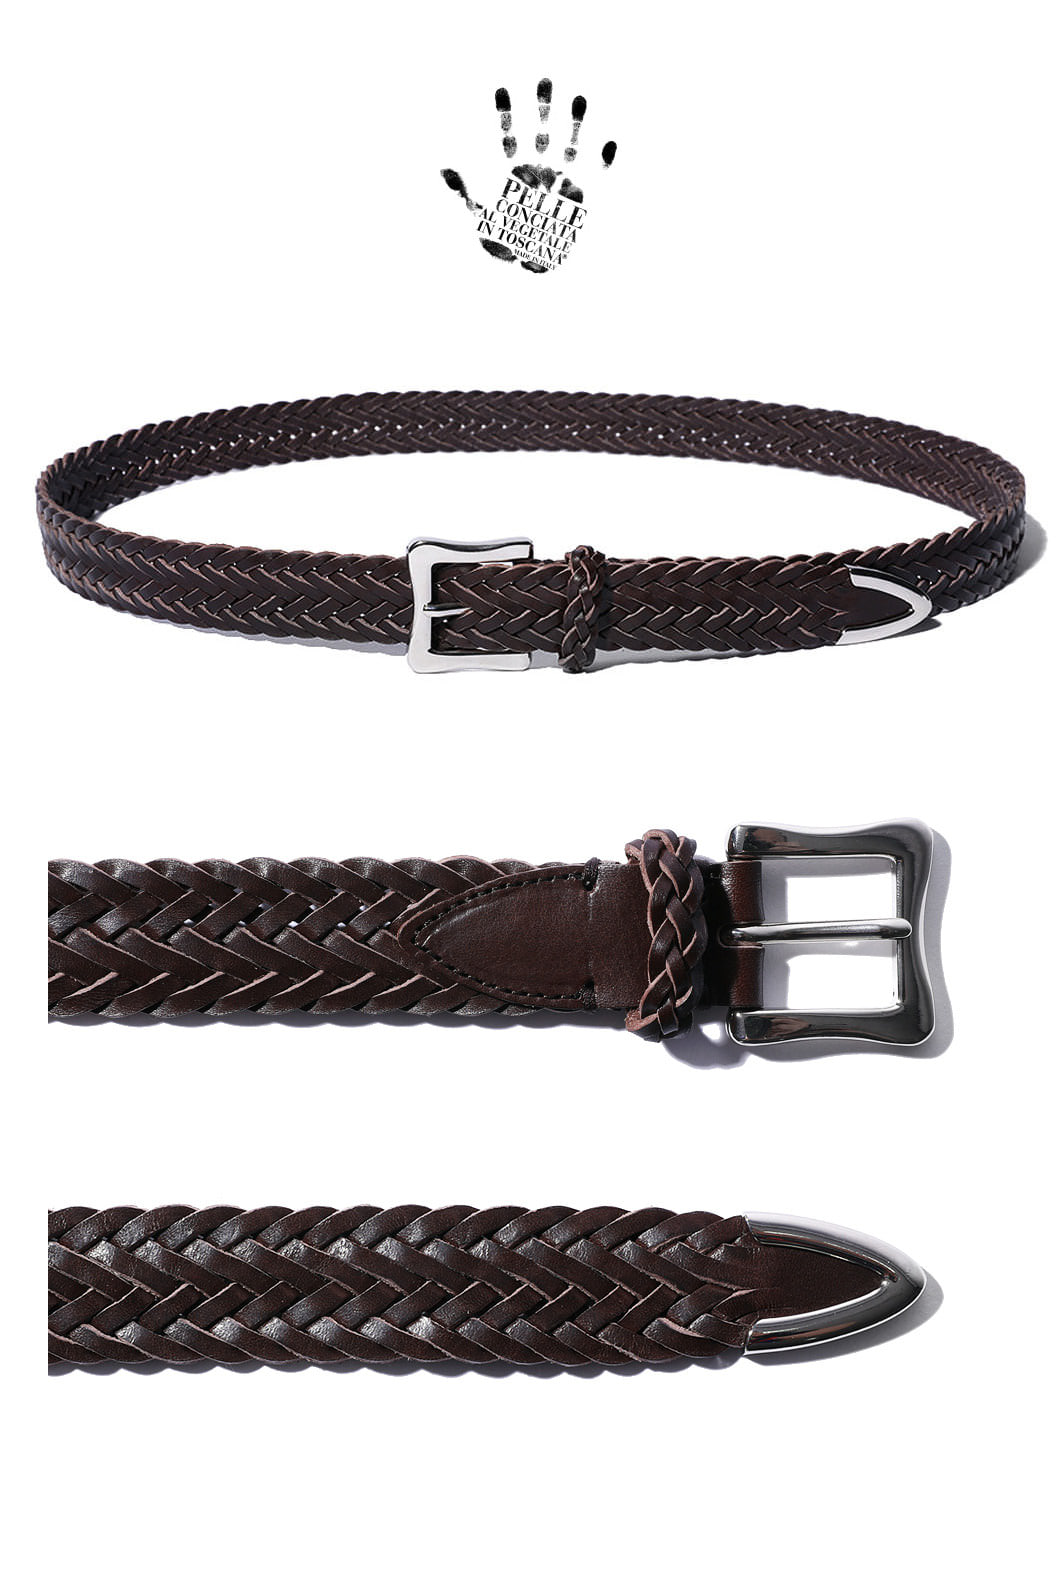 SAVAGE 140 WEAVING BELT-BROWNSPECIAL ORDER-HAND MADE